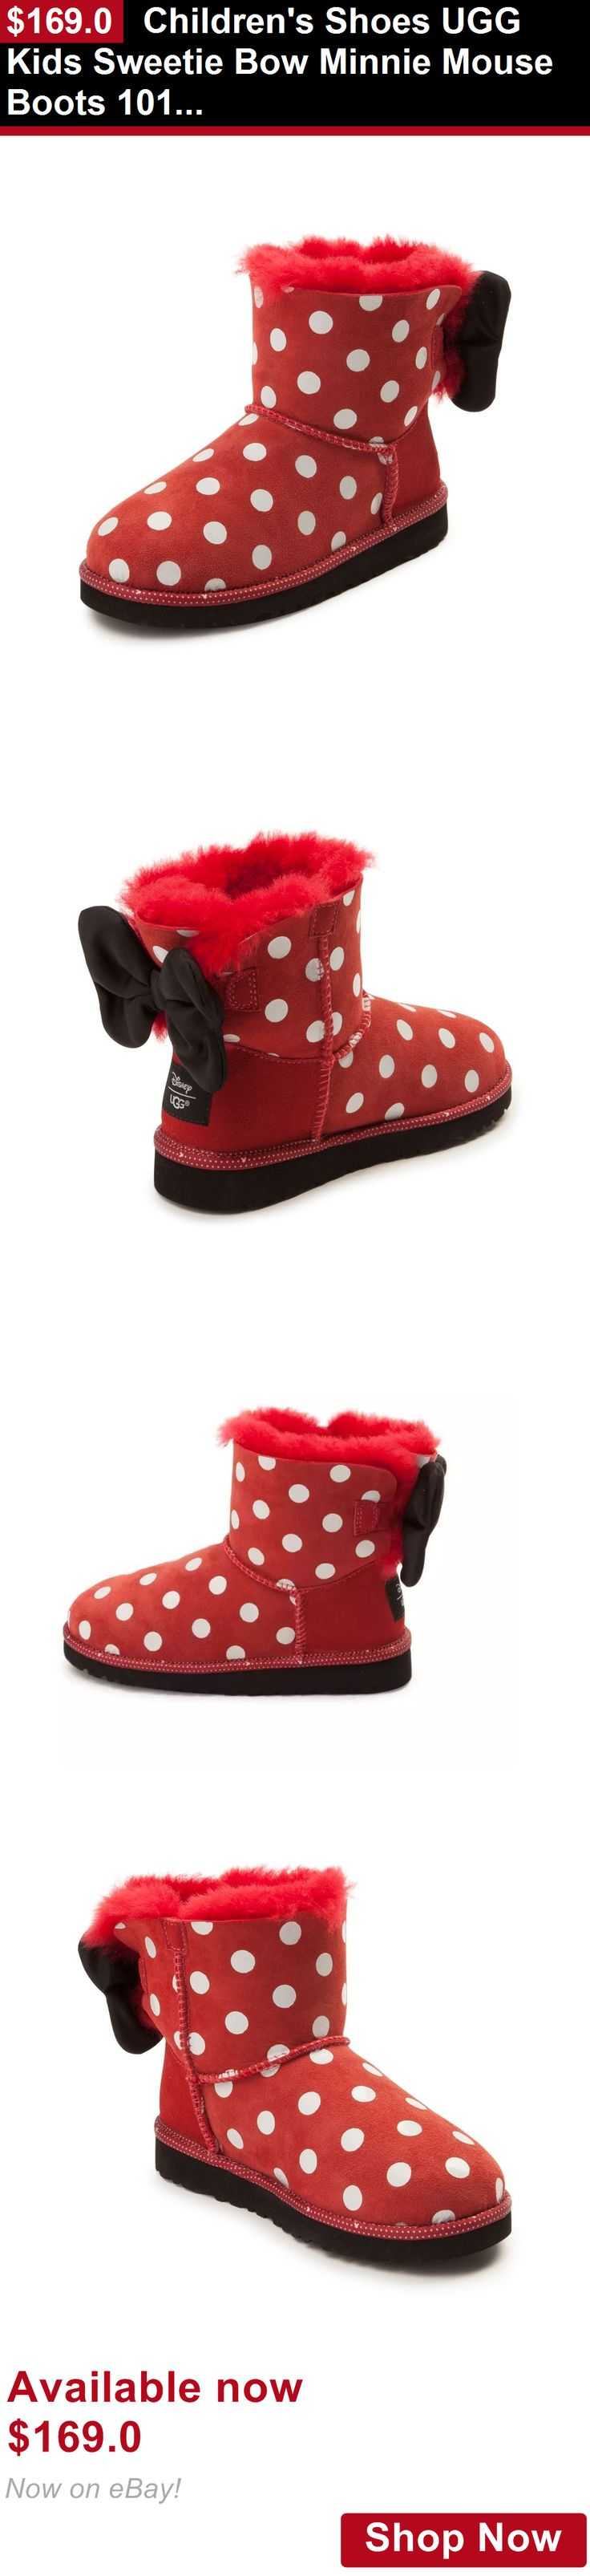 Children girls clothing shoes and accessories: Childrens Shoes Ugg Kids Sweetie Bow Minnie Mouse Boots 1015772K Red *New* BUY IT NOW ONLY: $169.0